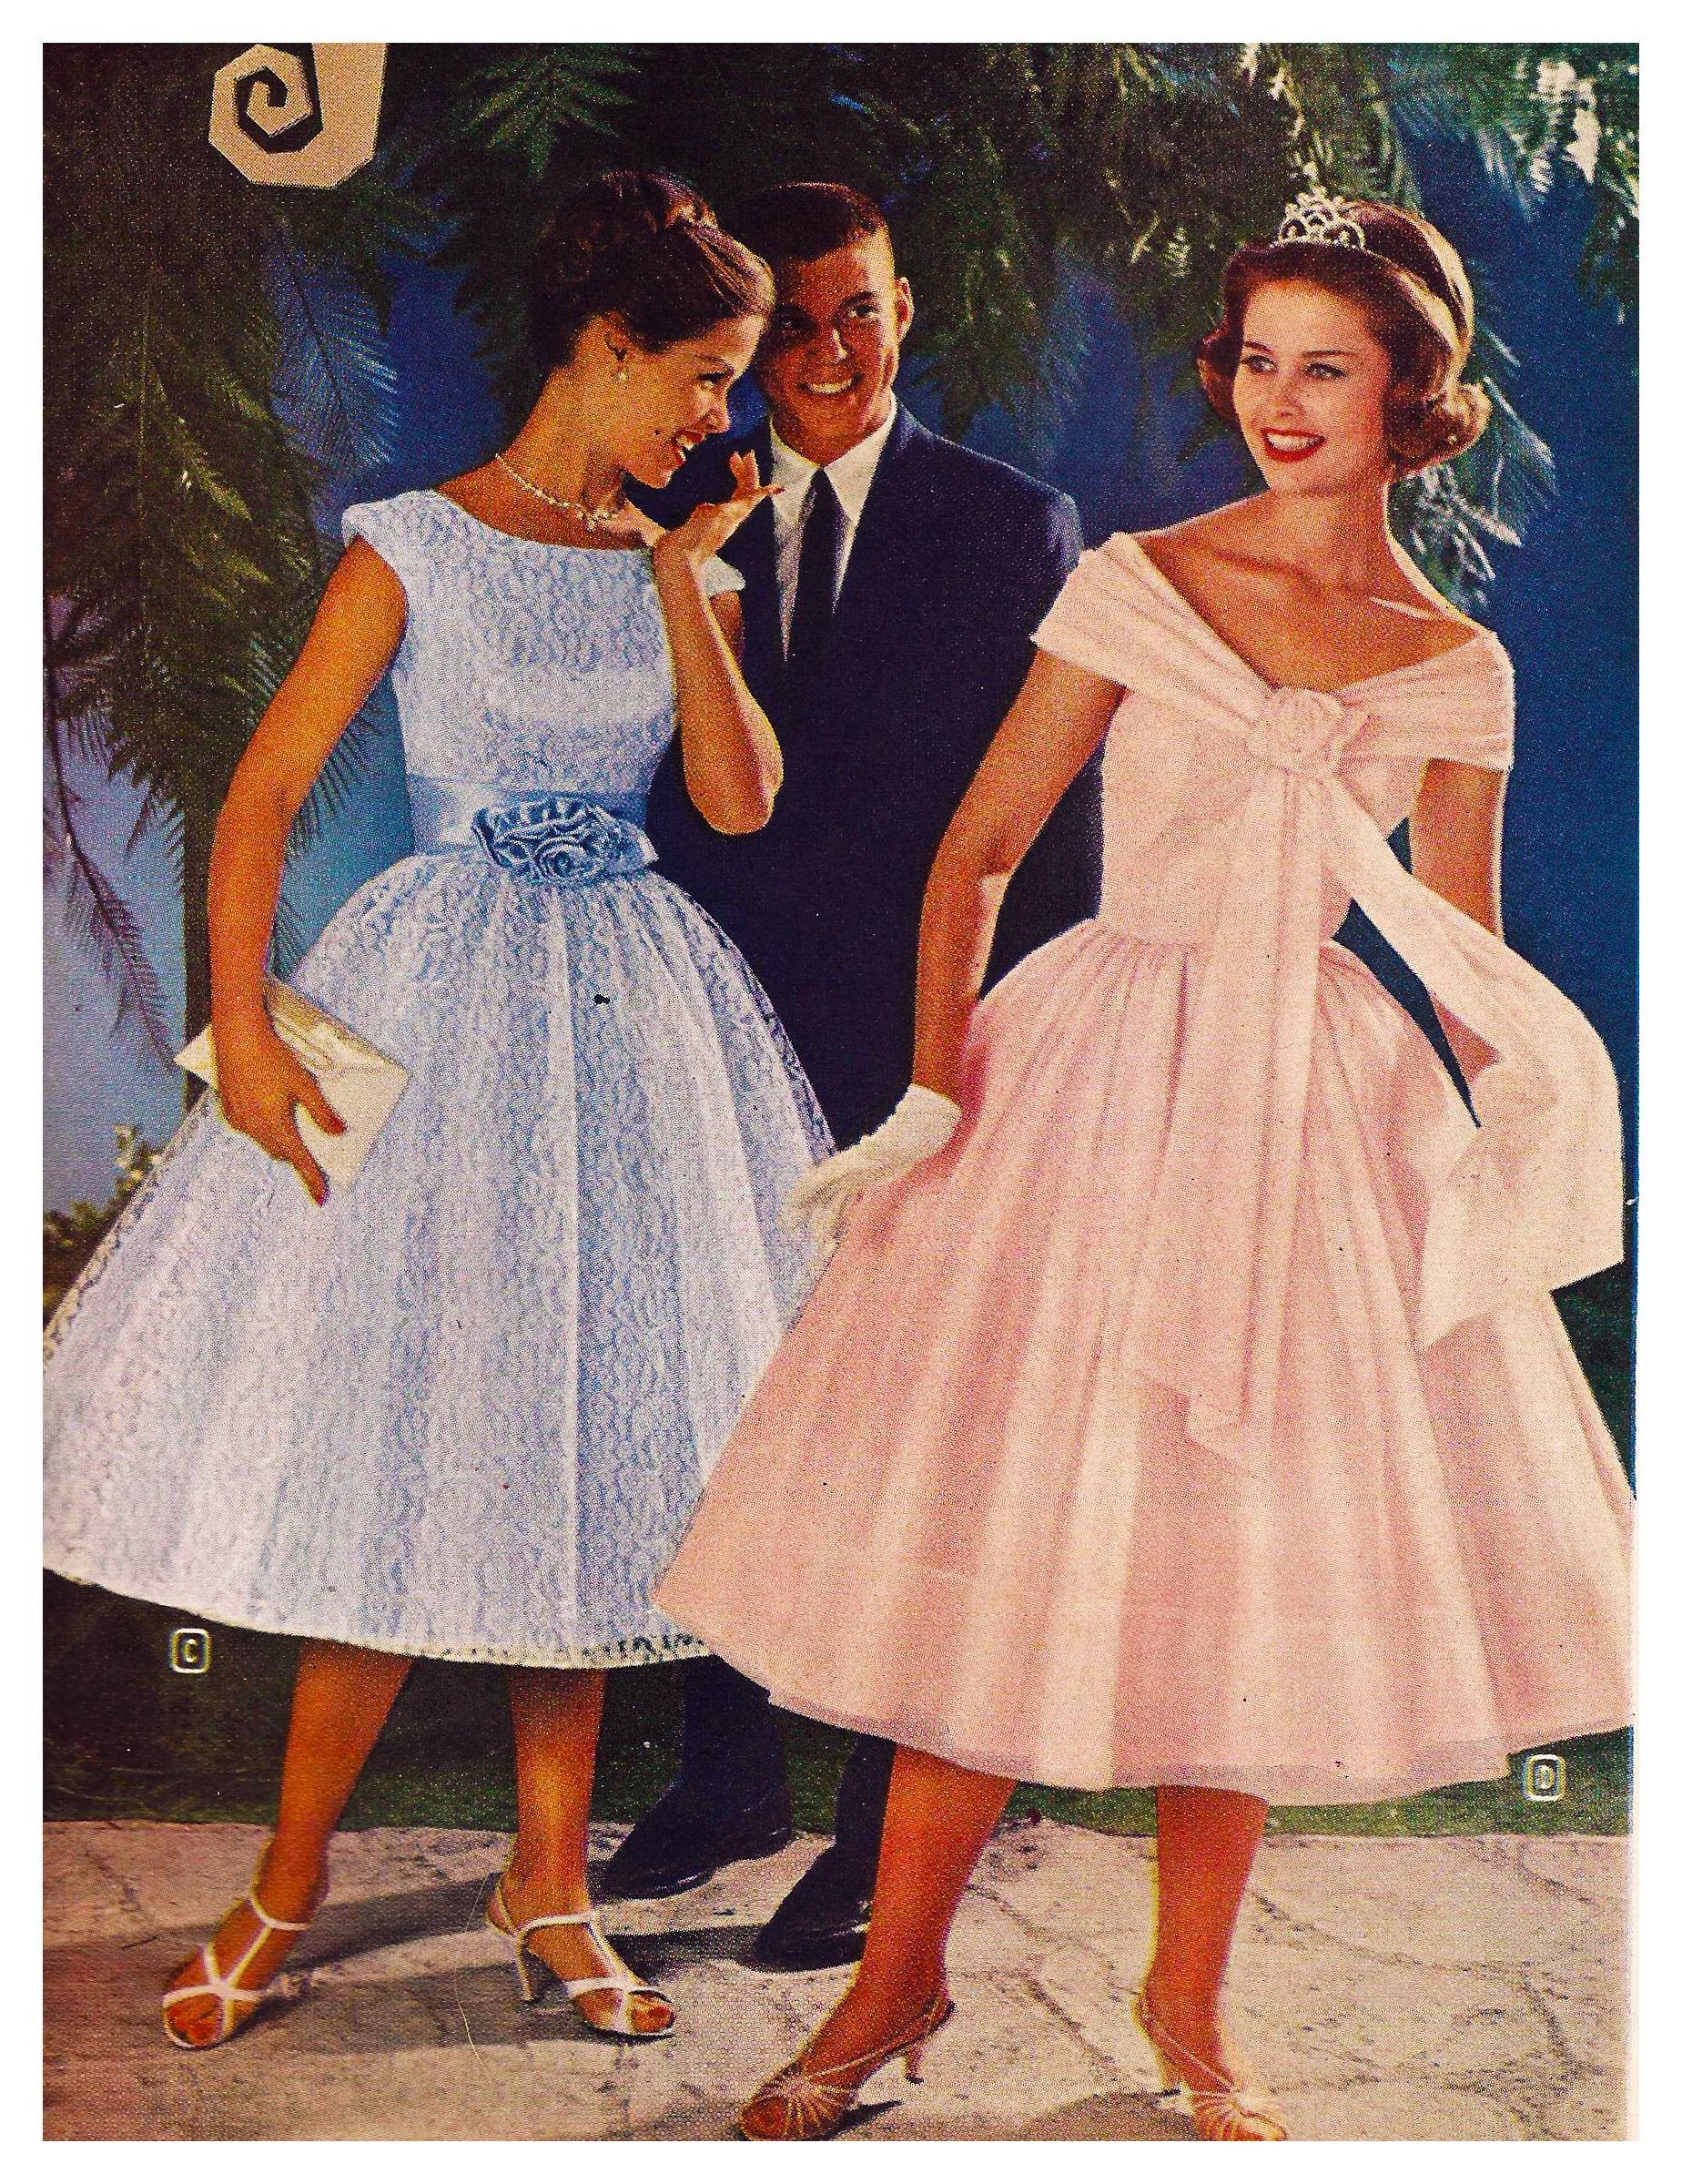 Pin by cat on narrative daydreams pinterest prom daydream